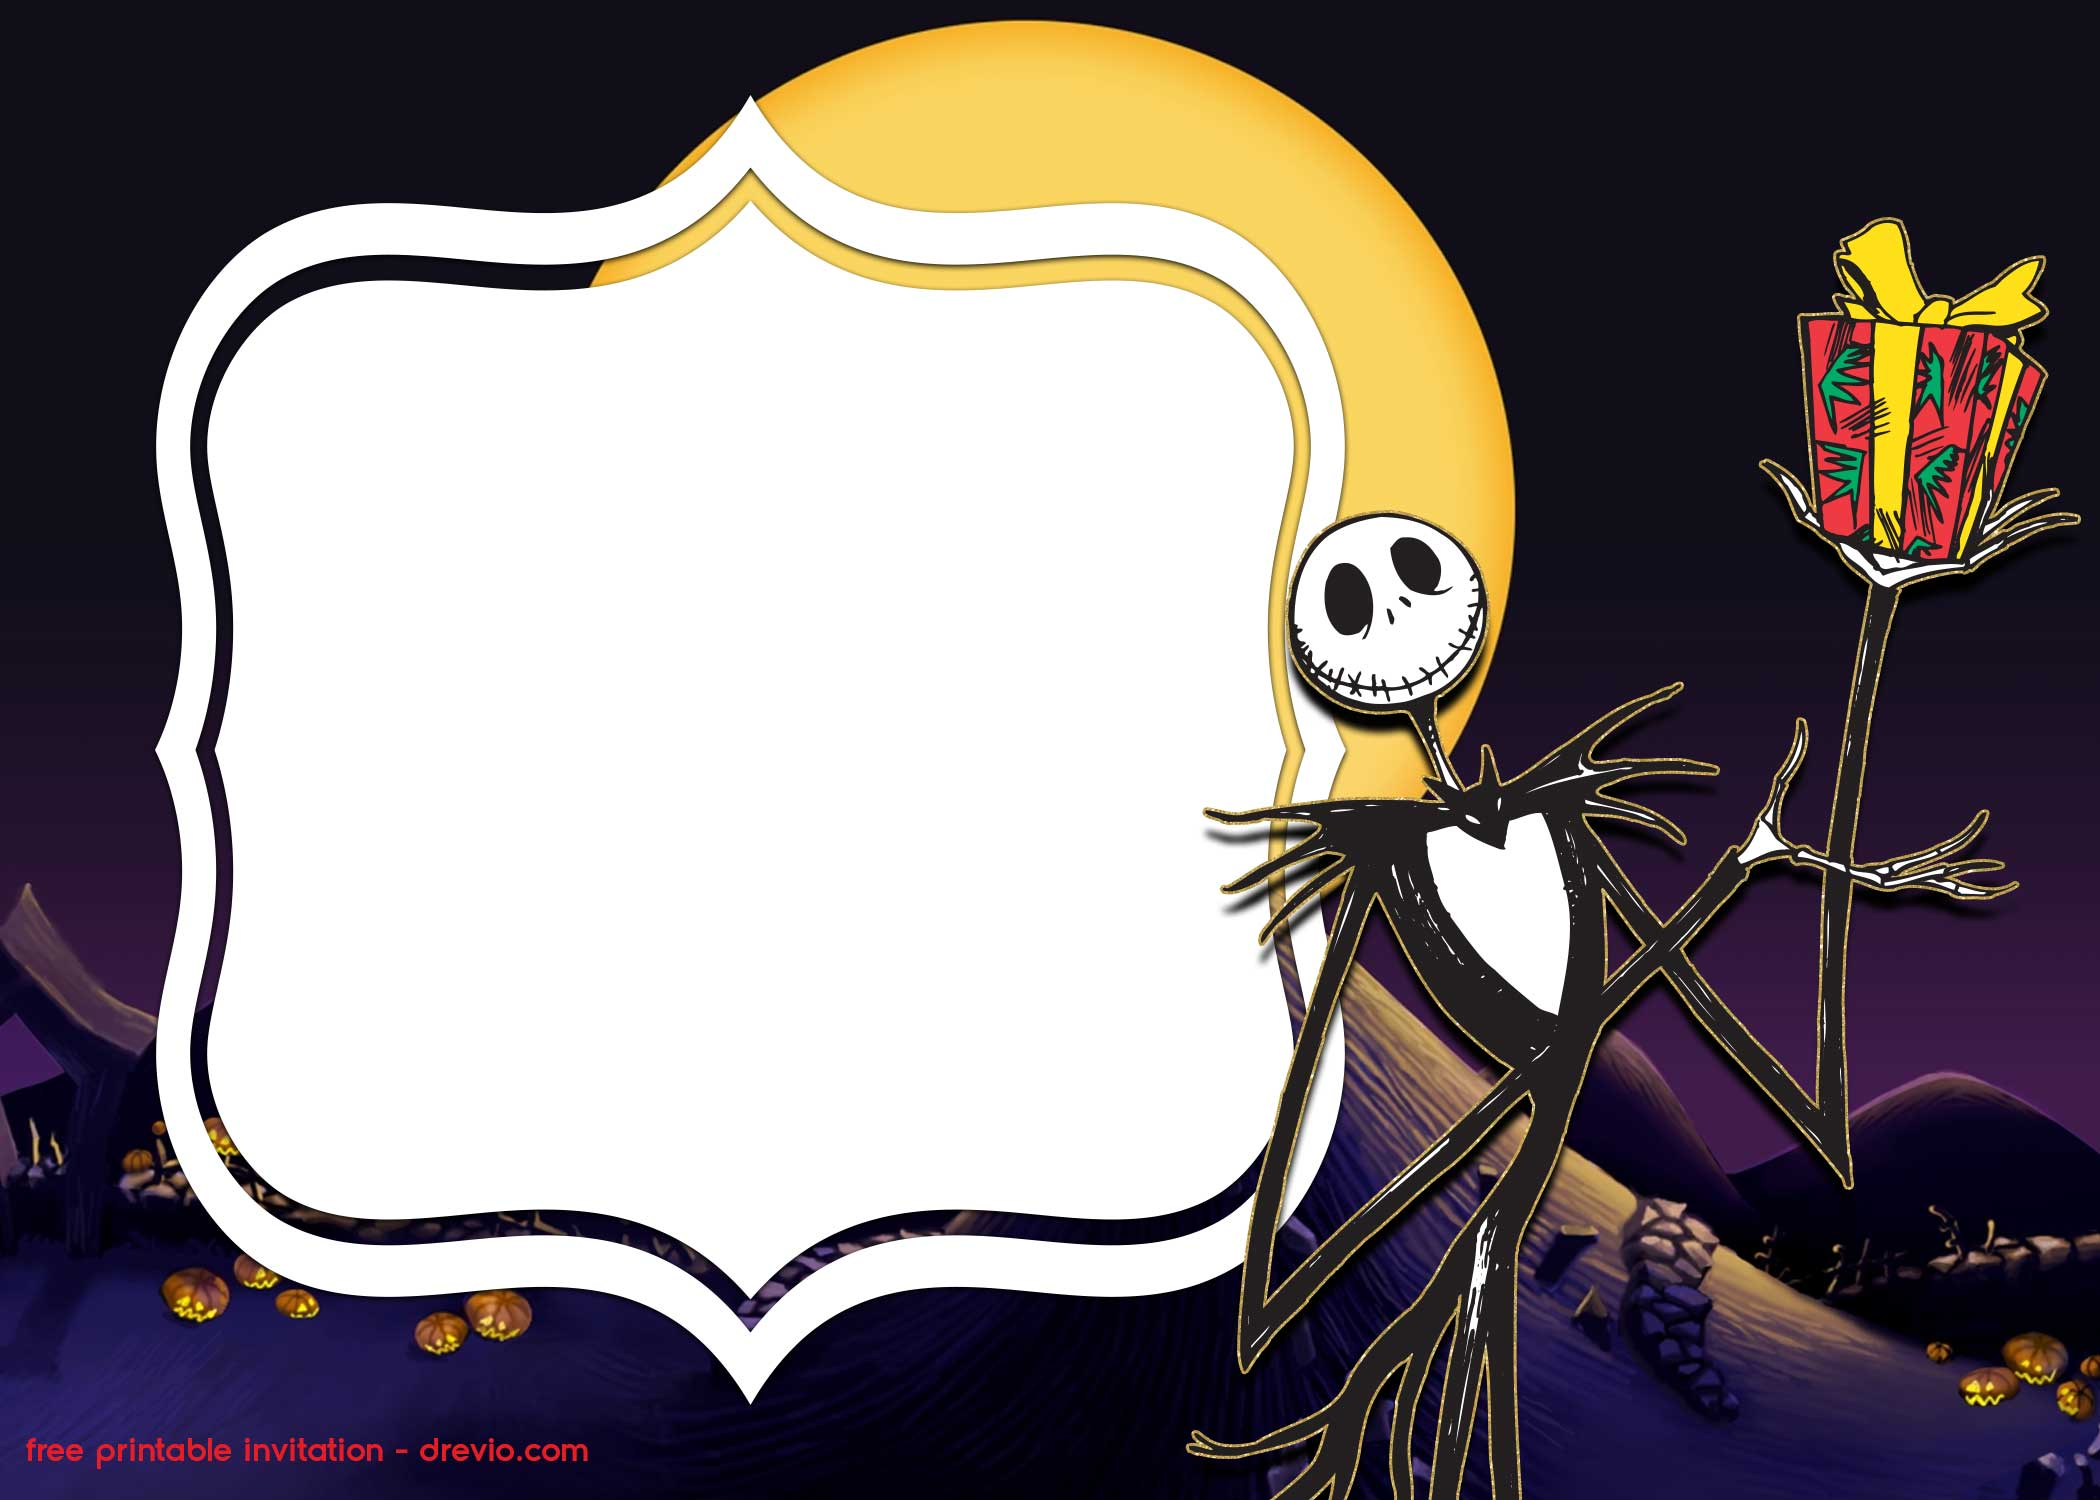 FREE Printable Jack Skellington Invitation Templates ...